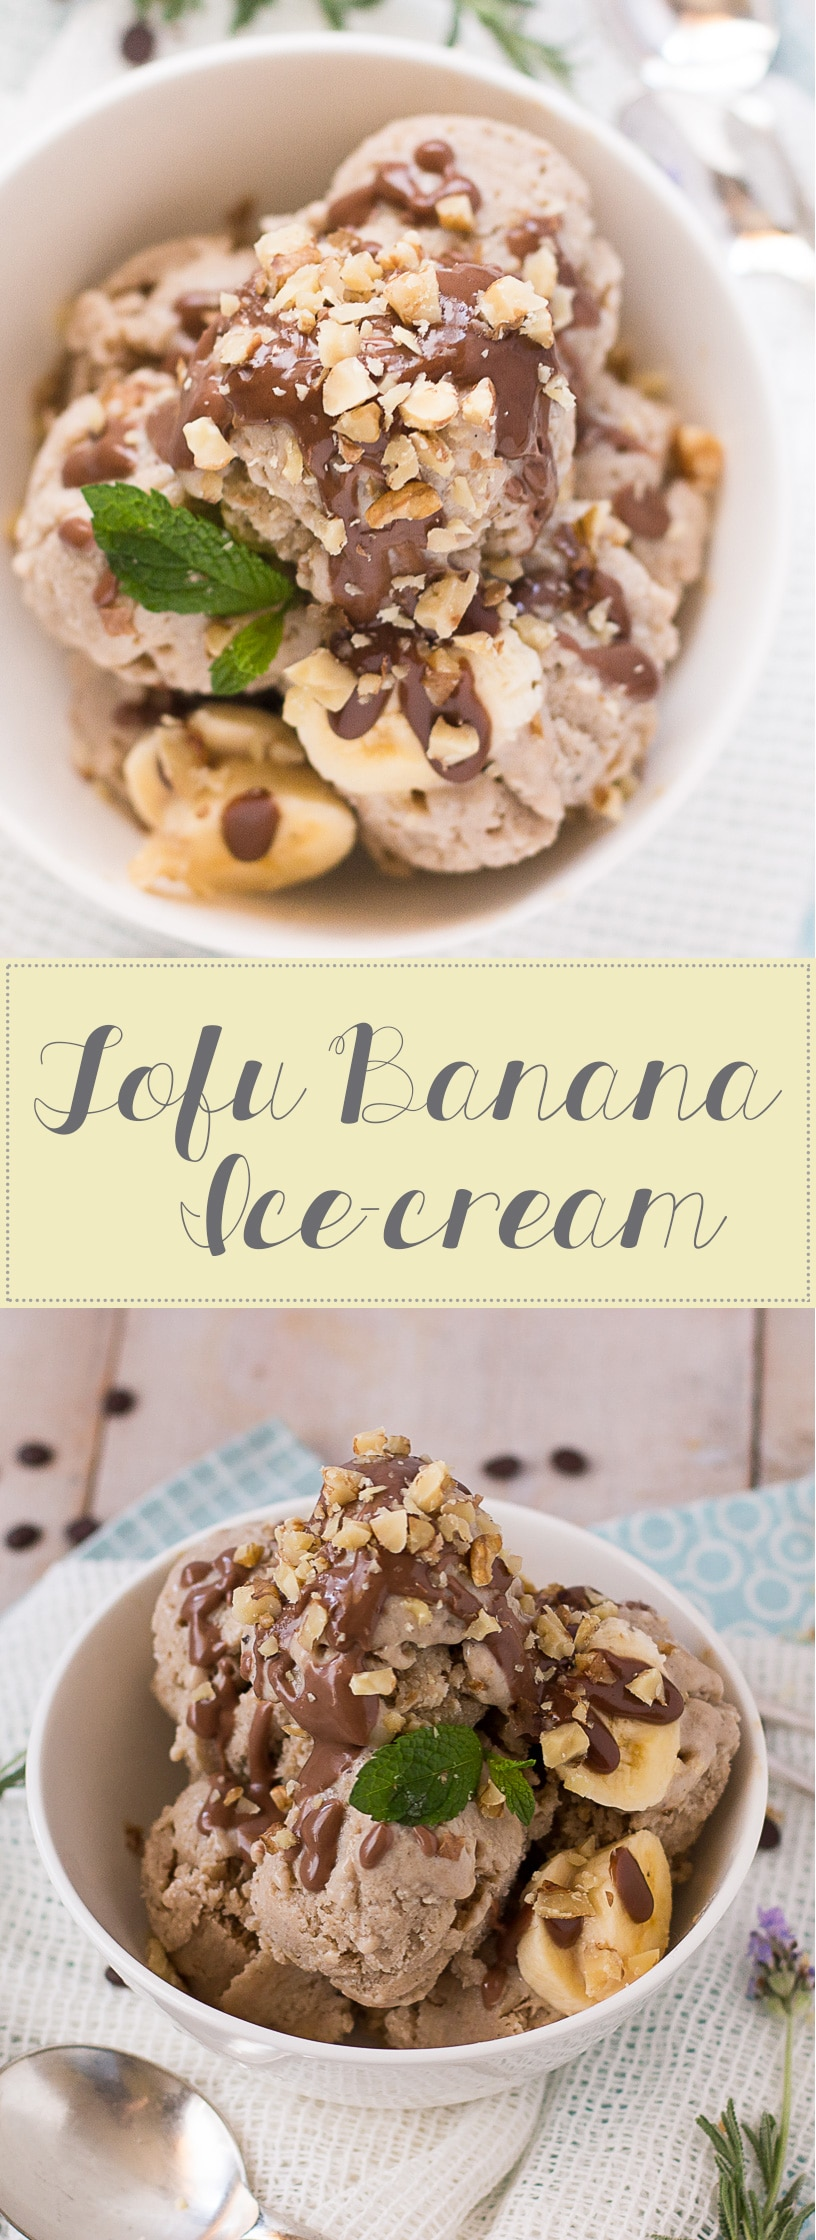 Tofu Banana Ice-cream collage